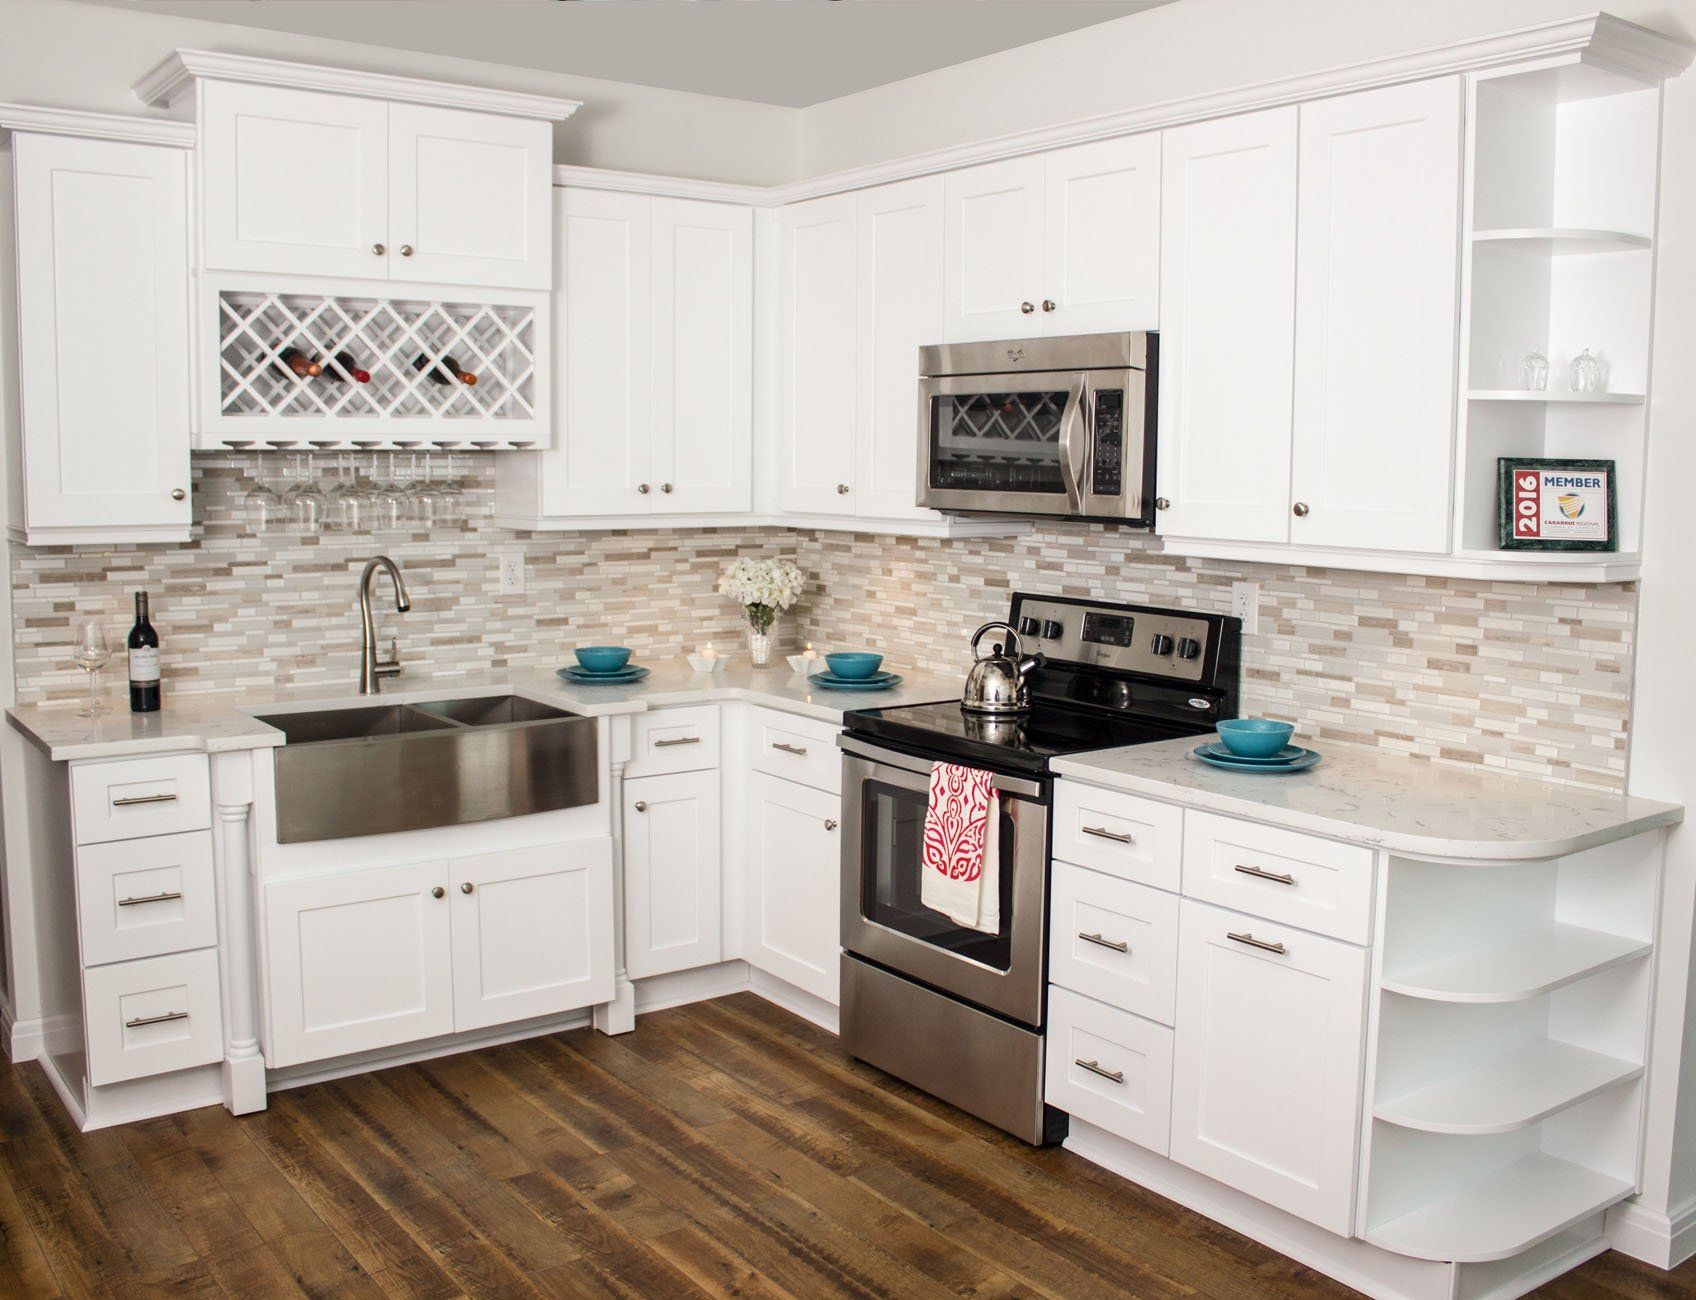 National Kitchen & Bath Cabinetry Inc